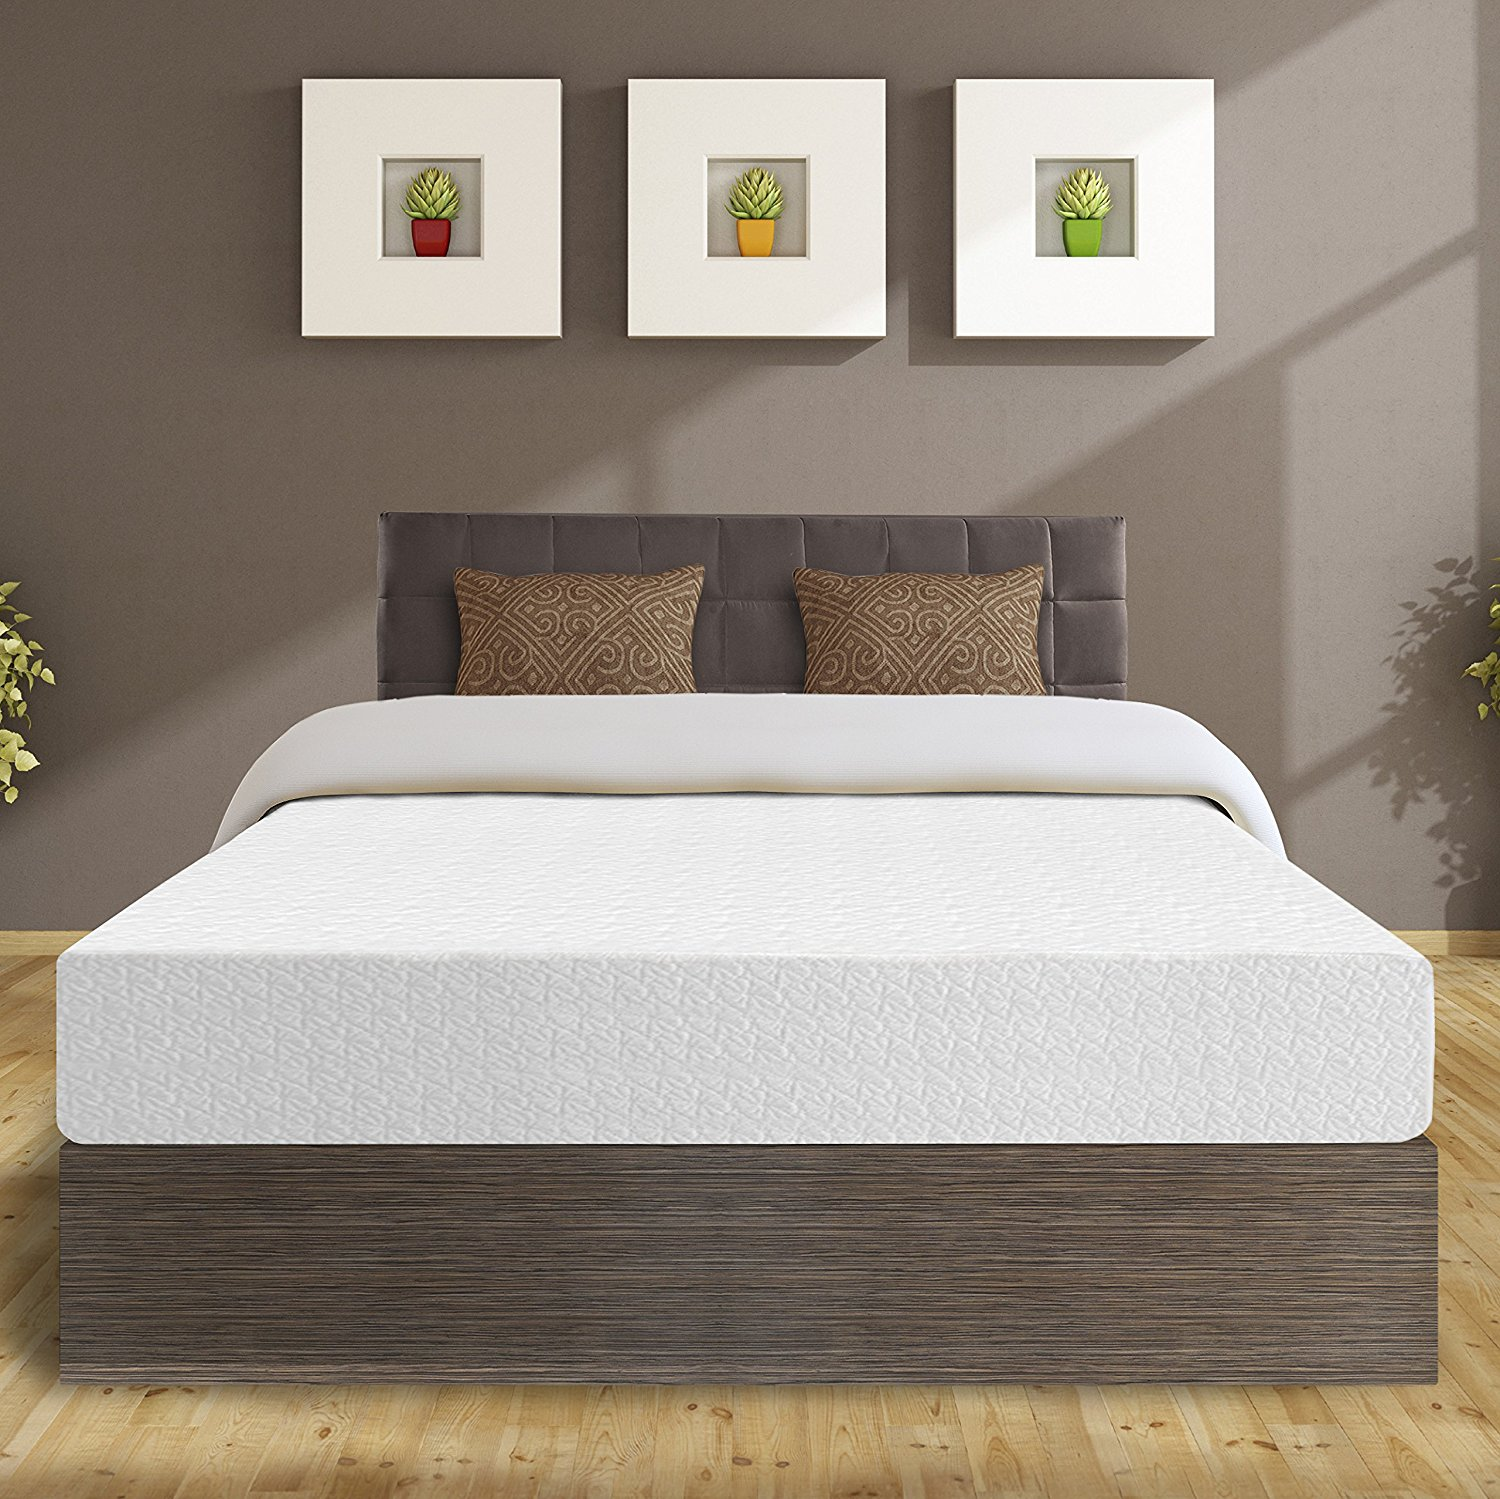 Best Foam Matress Best Price Mattress 10 Inch Memory Foam Mattress